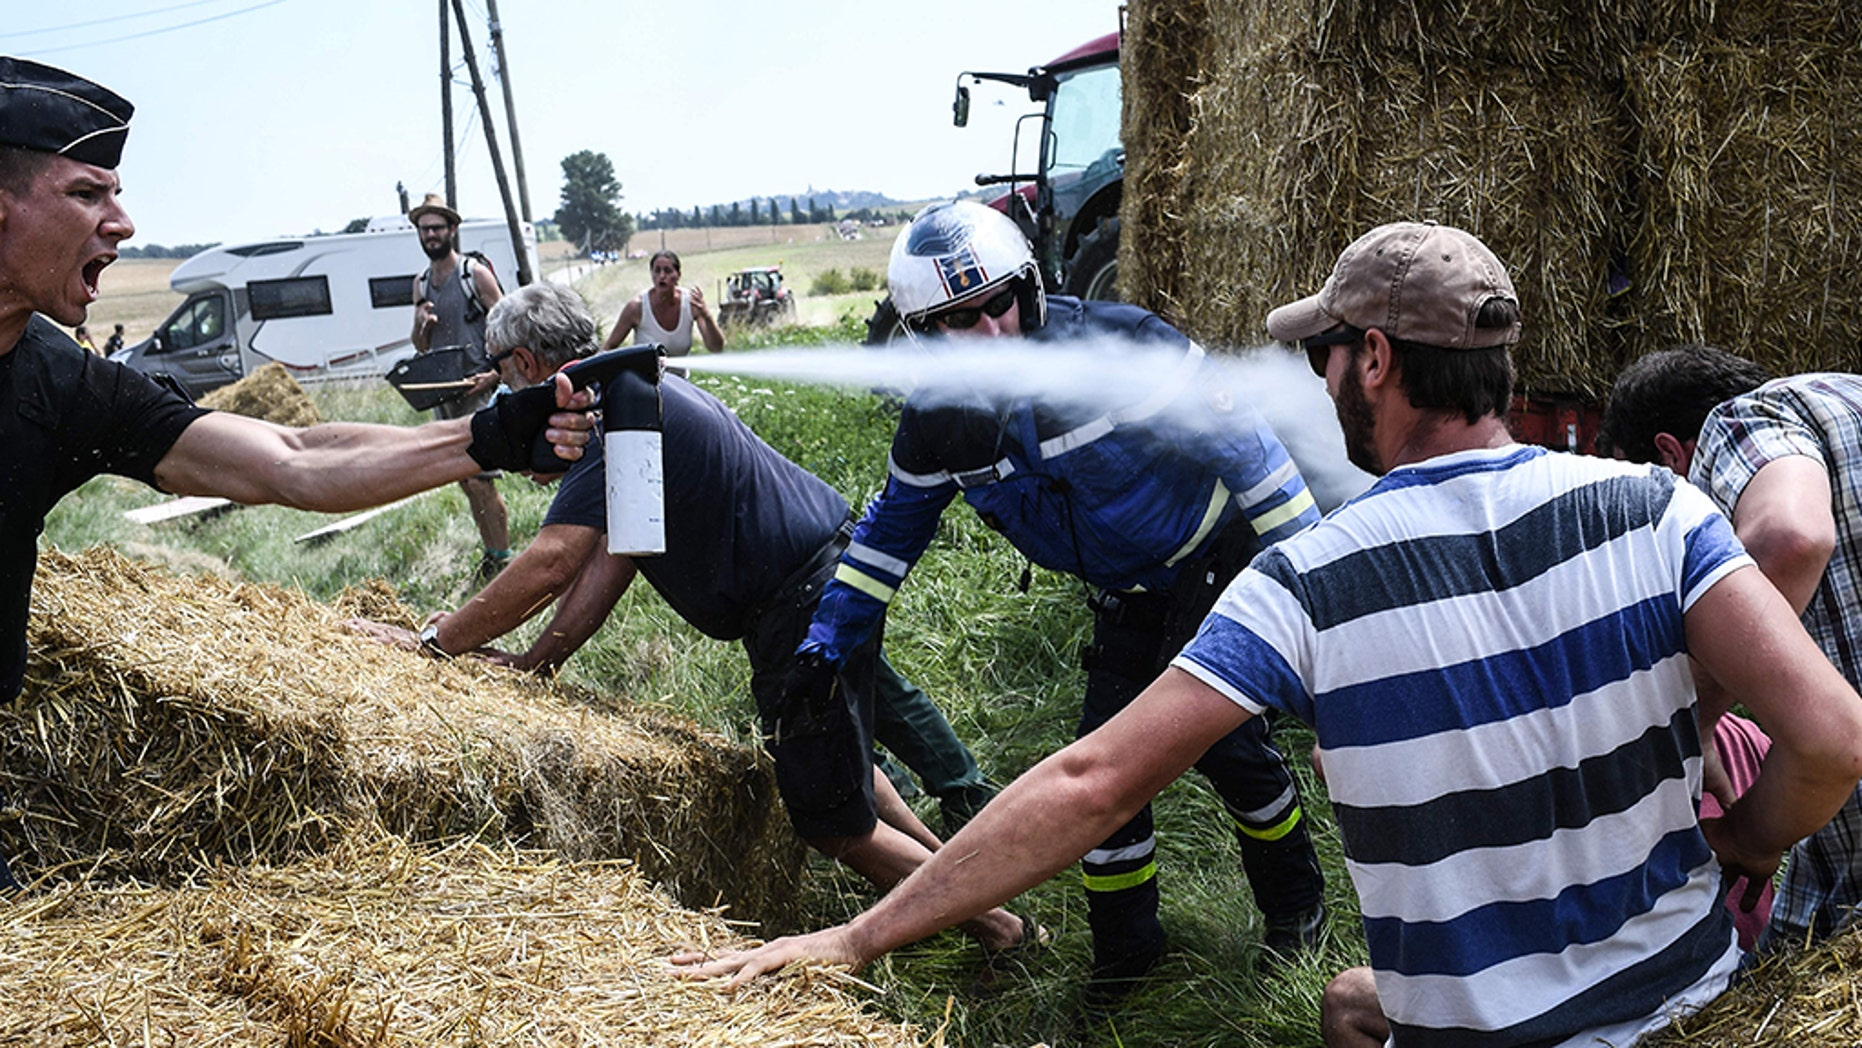 A gendarme, left, sprays tear gas at protesters as other gendarmes remove haystacks from the route of the Tour de France.